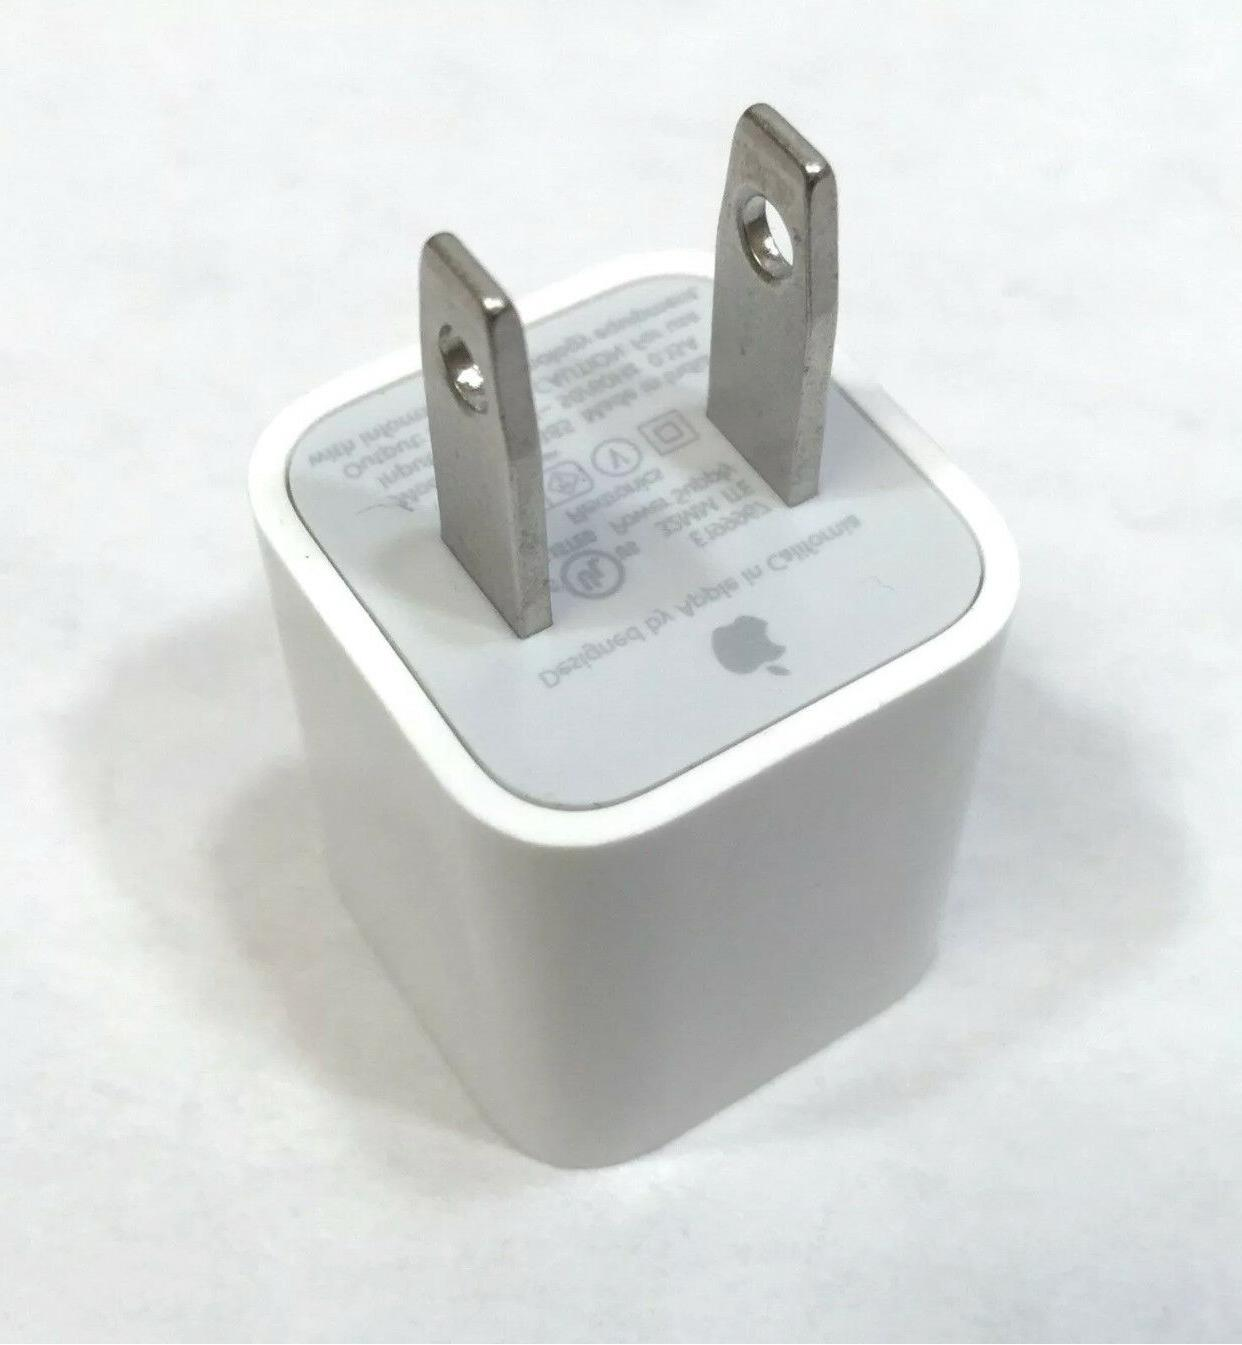 IPhone Charger 5W USB Power Wall Plug Cube